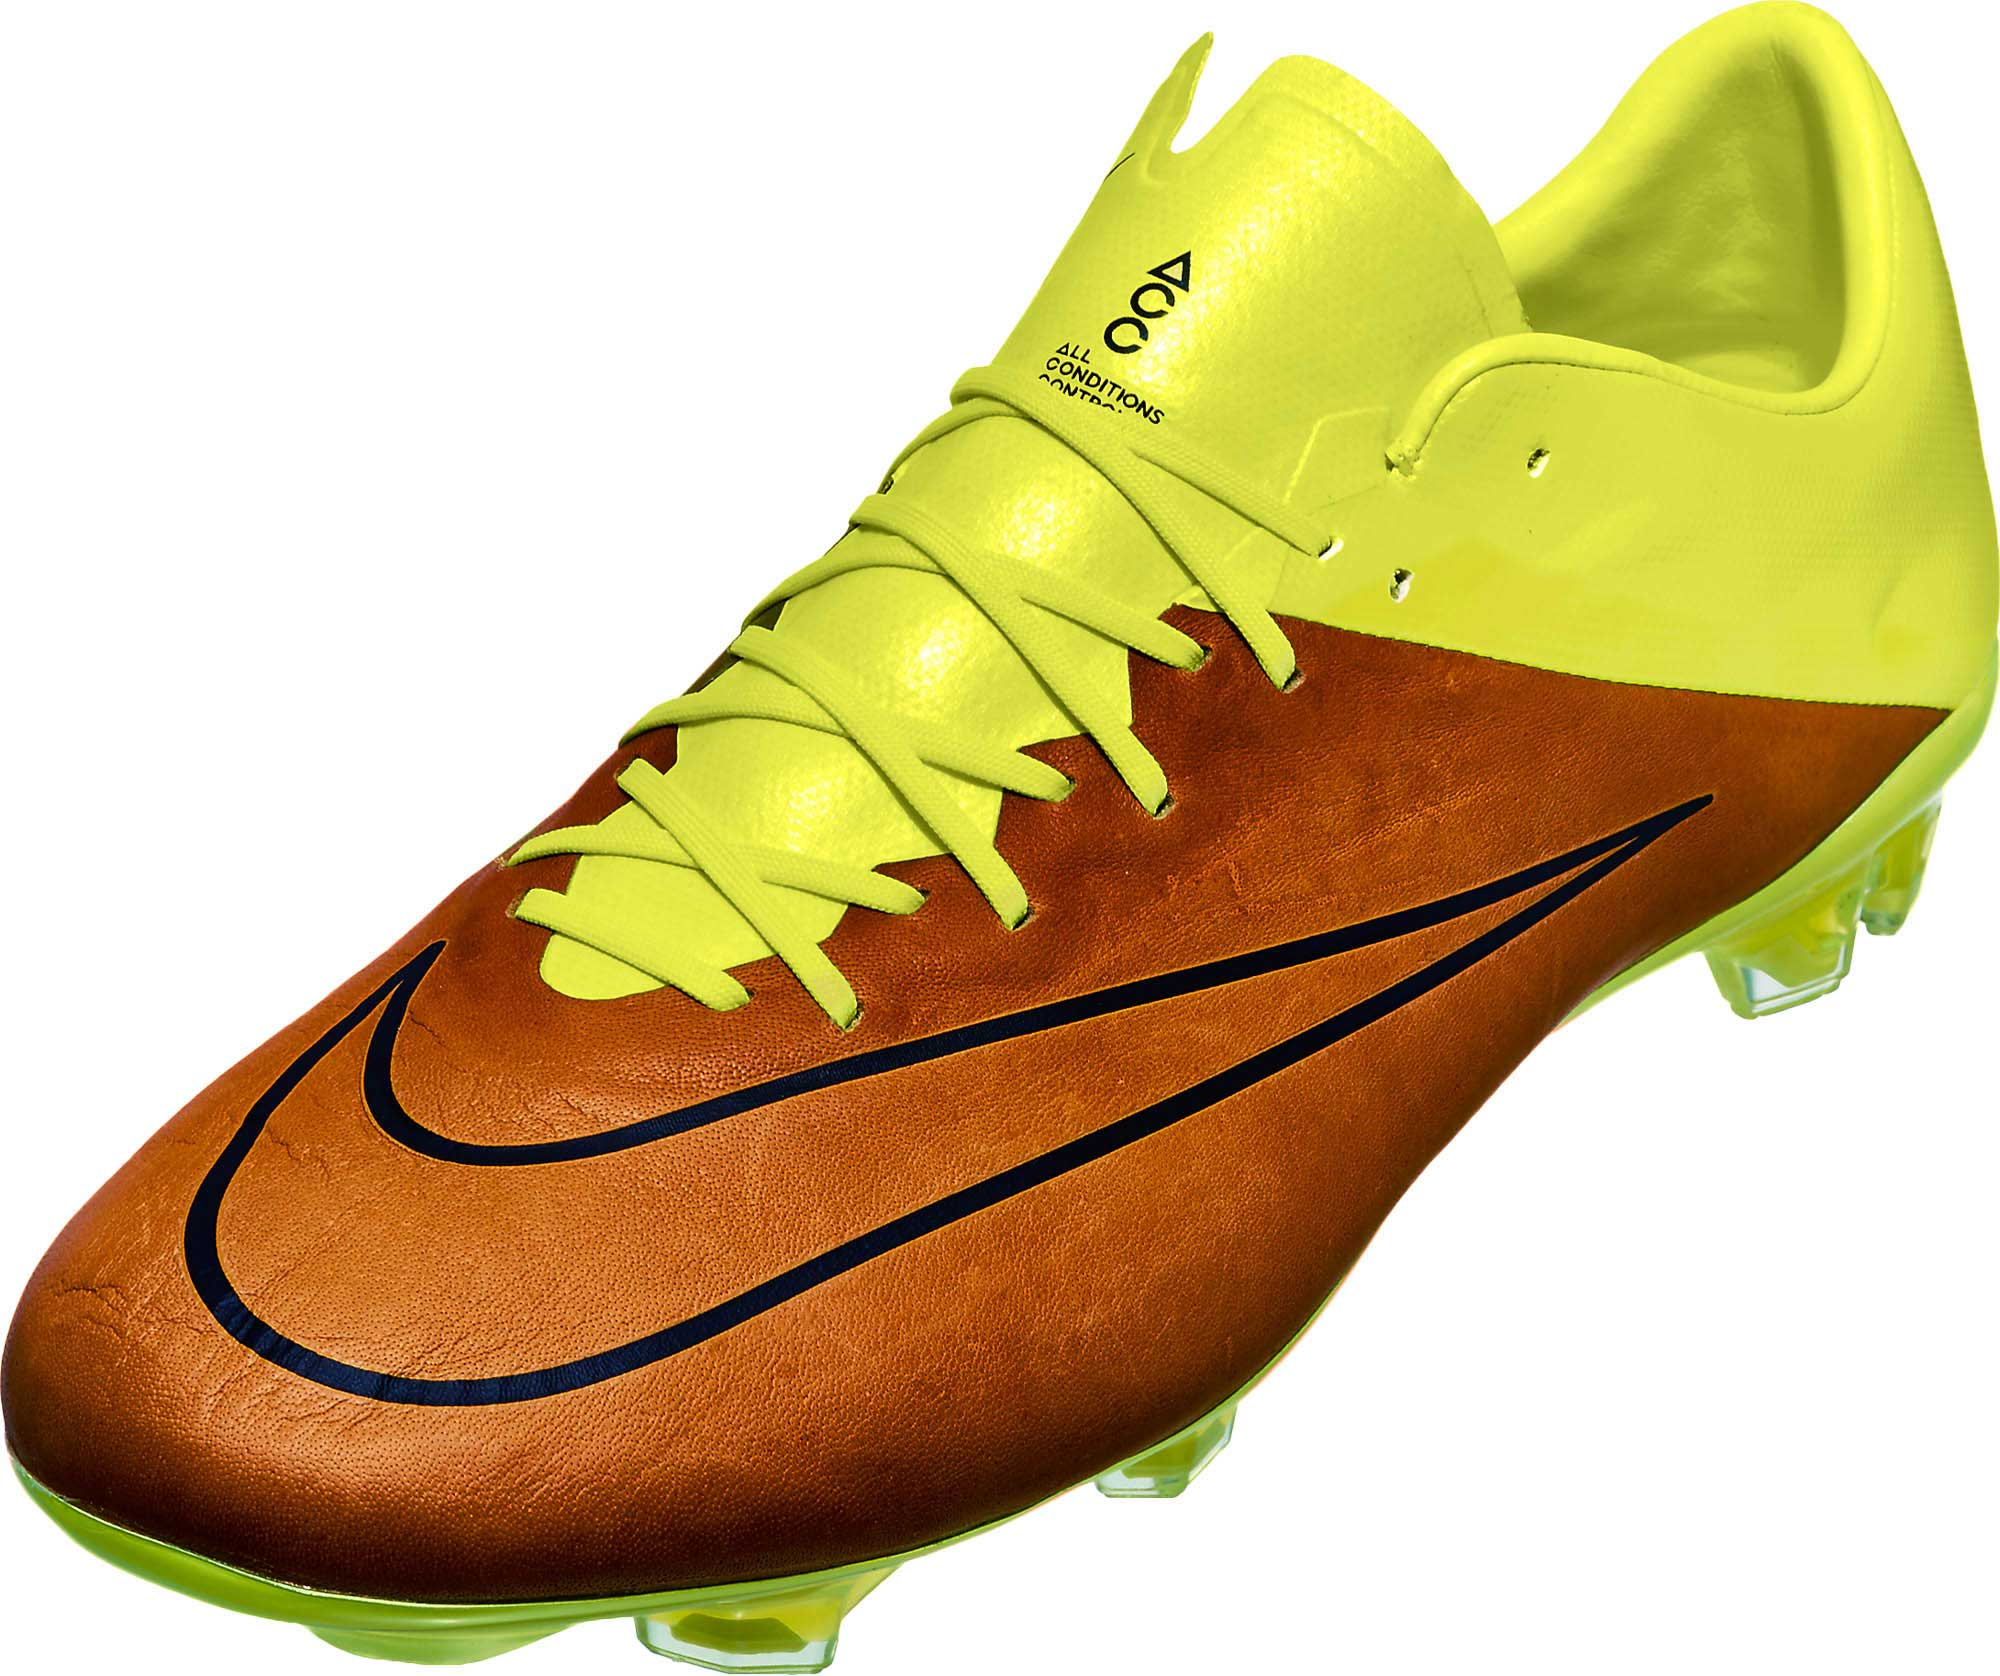 31a0a5e5ada6 Nike Mercurial Vapor X - Volt Tech Craft Nike FG Soccer Cleats